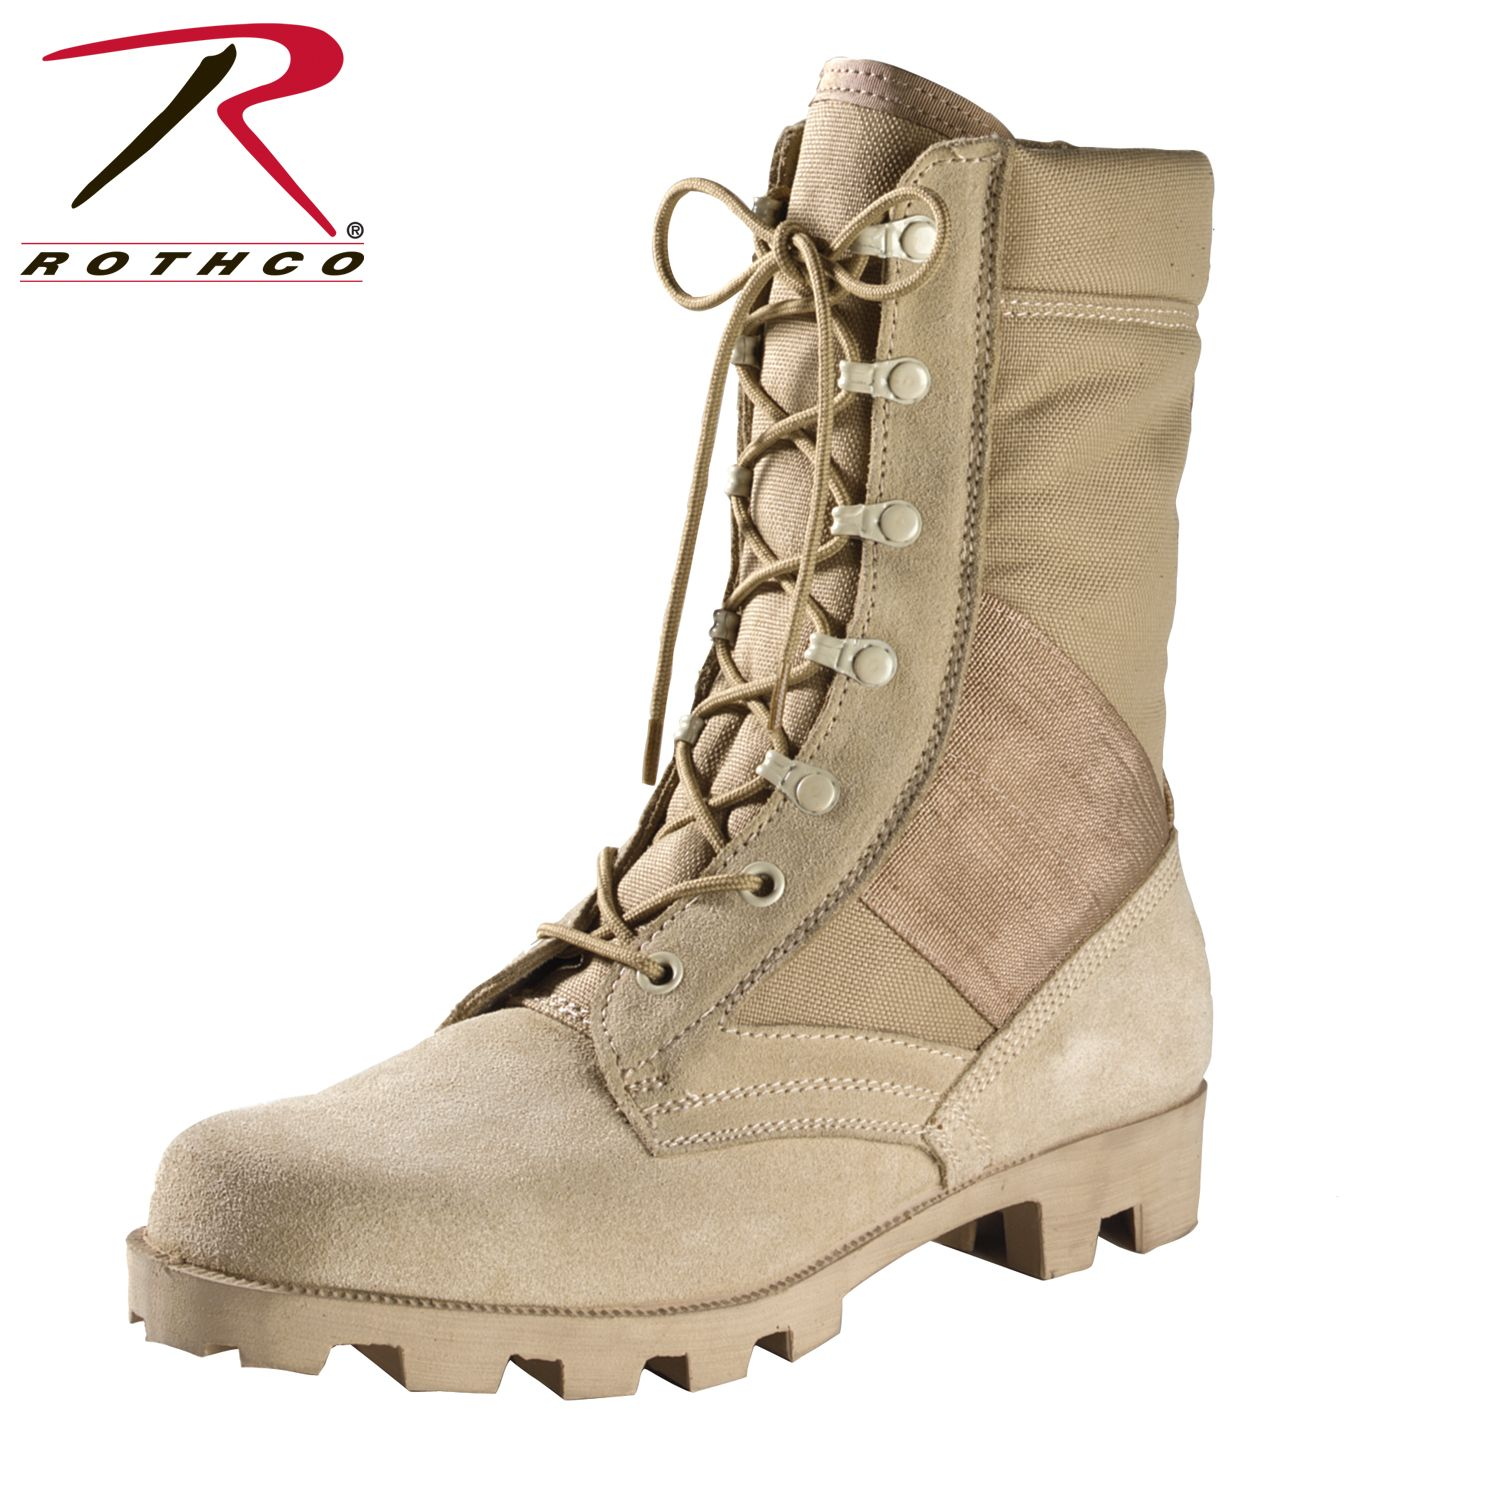 Women Boots Suede Desert Bootie Chukka Boot Military Tactical Boots Army Combat Jungle Boots Lace Up Martin Snow Boots